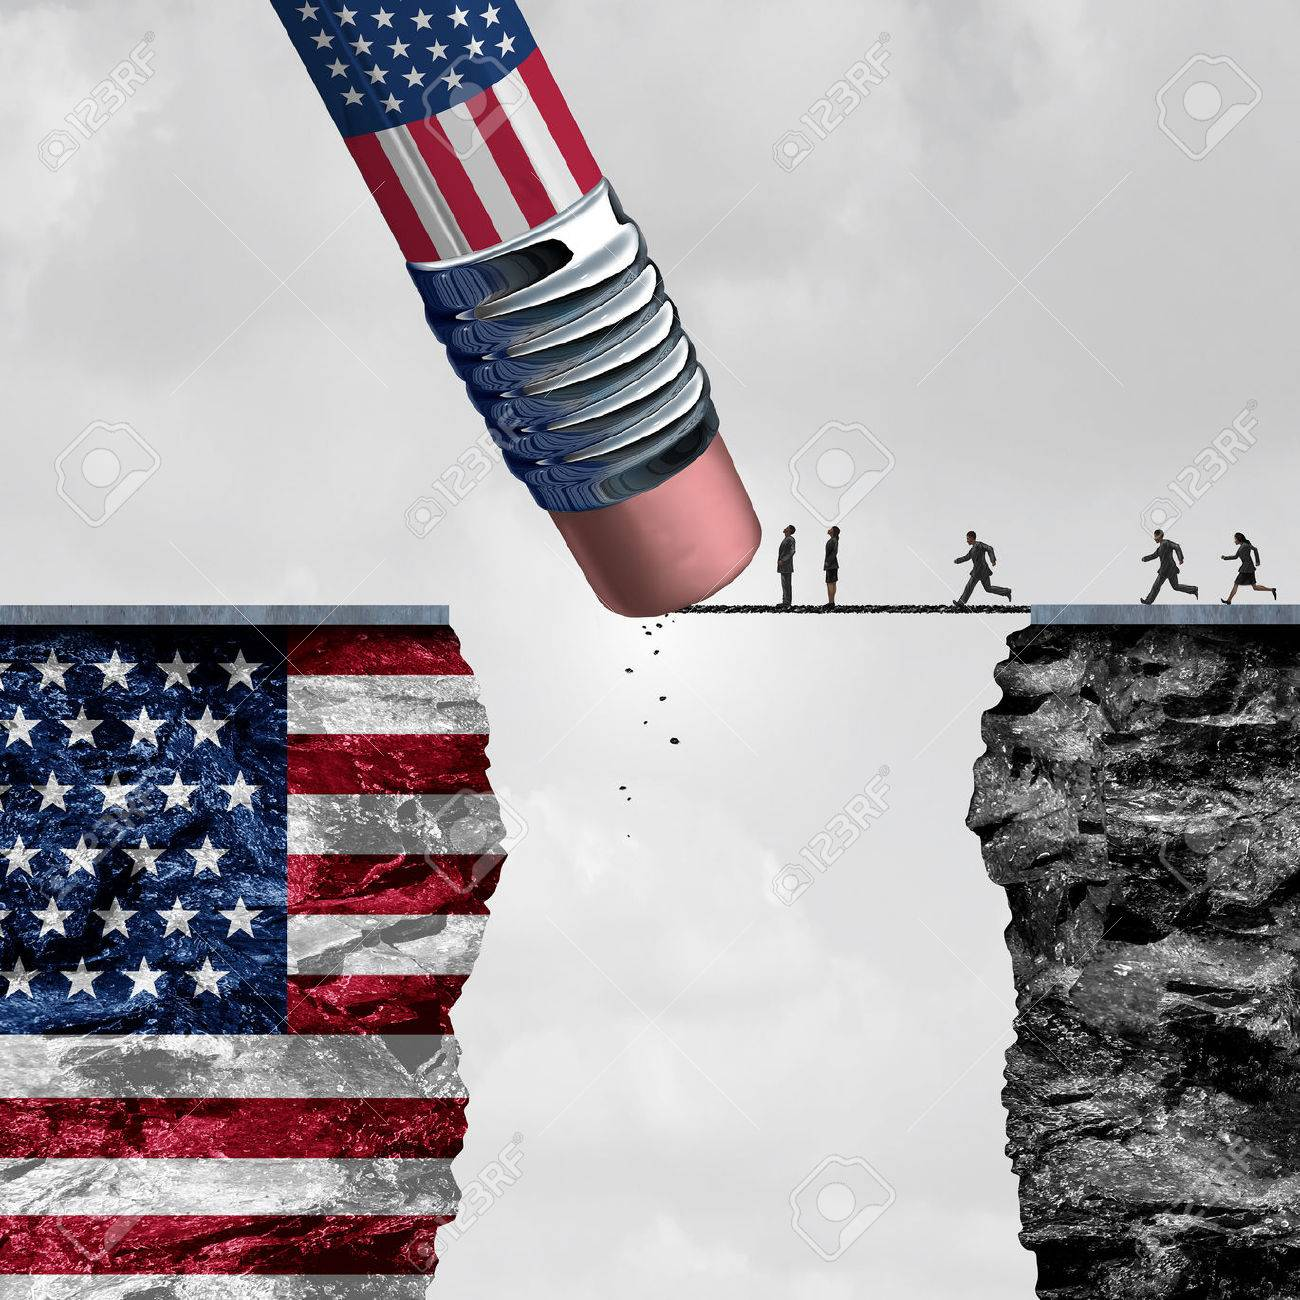 United States border isolationism and protectionism or American immigration refugee crisis as people running to cross a bridge that is being erased by a pencil with a US flag on a cliff as a social issue on refugees or illegal immigrants with 3D illustration elements. Standard-Bild - 59422671